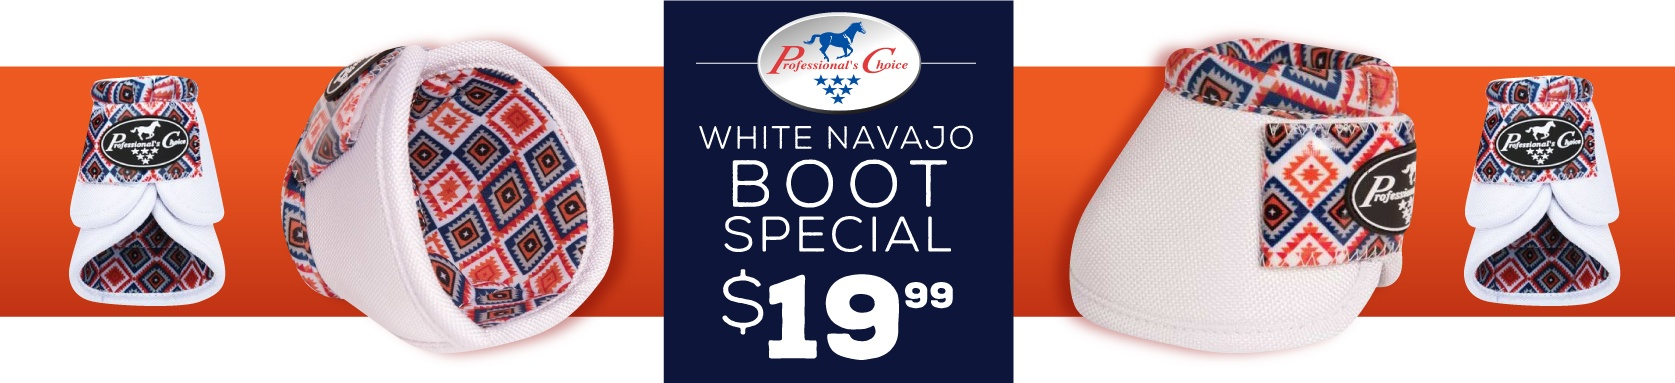 Professionals Choice White Overreach Boots